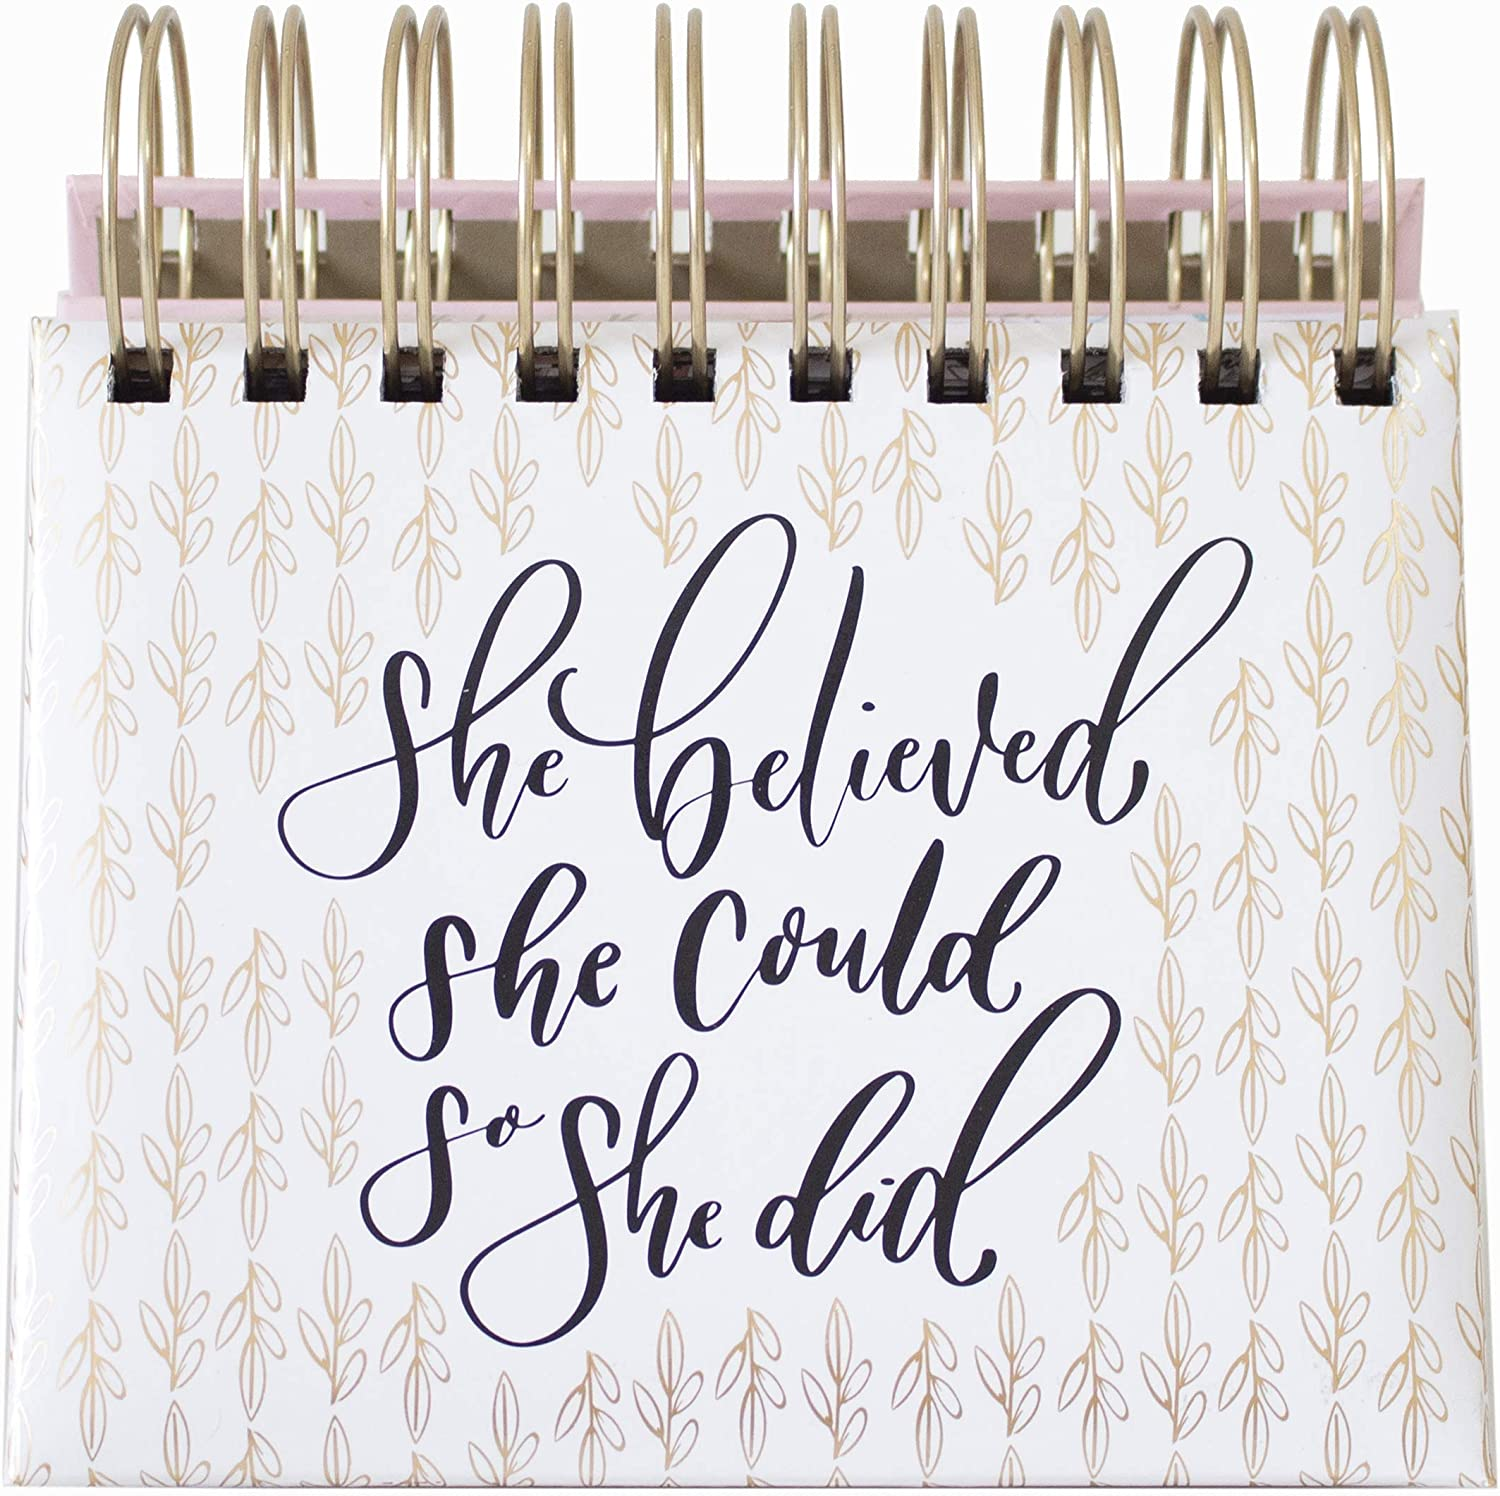 """bloom daily planners Undated Perpetual Desk Easel/Inspirational Standing Desktop Flip Calendar - (5.25"""" x 5.5"""")""""She Believed She Could So She Did"""" by Writefully His"""